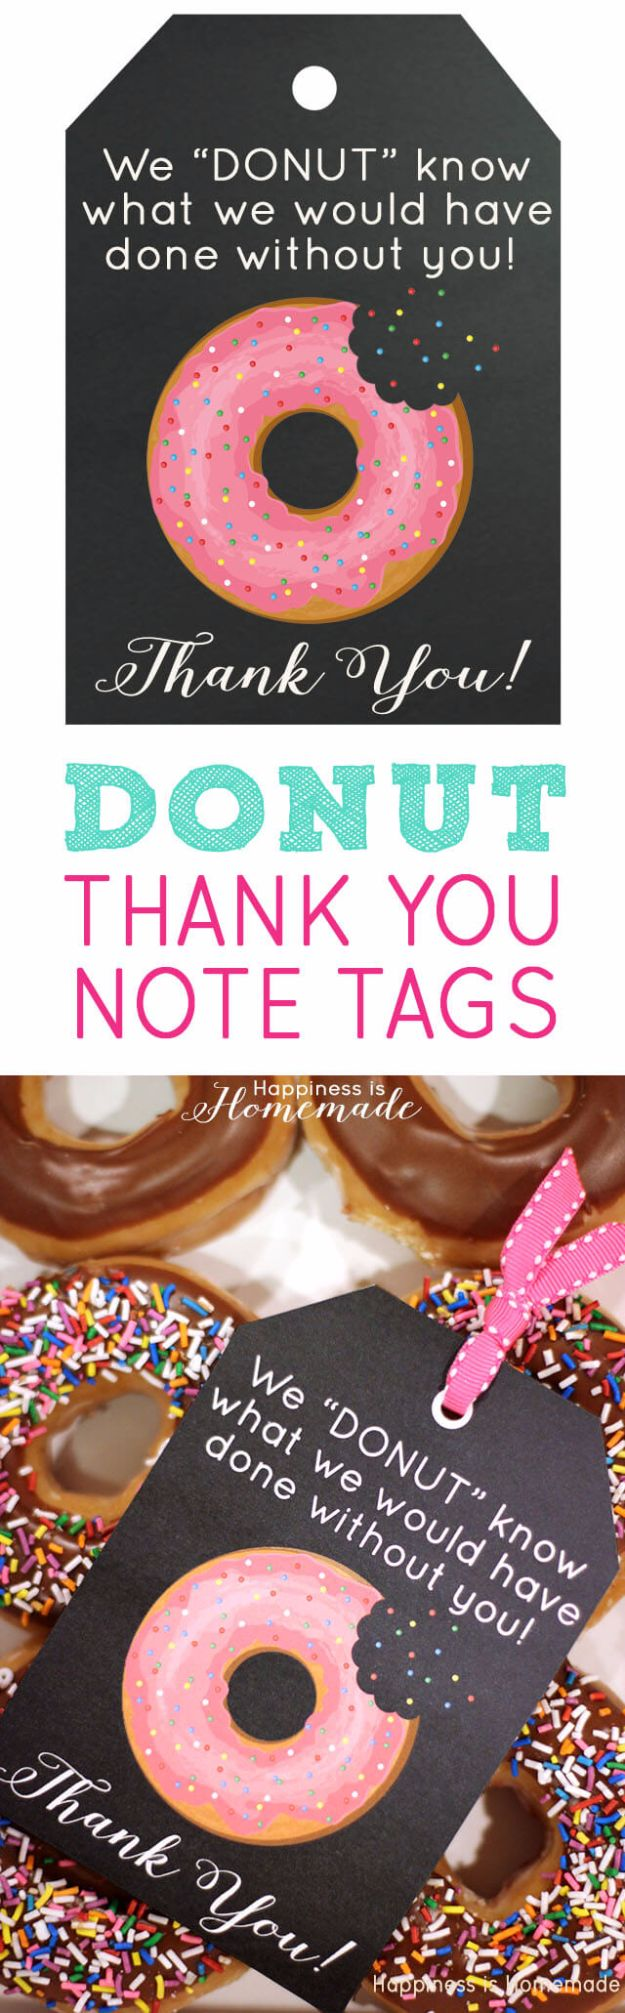 Homemade Gift Cards and Tags - Donut Thank You Gift Tags - Easy and Cheap Ideas for Creative Handmade Birthday, Christmas, Mothers Day and Father Day Cards - Cute Holiday Gift Tags, Dollar Store Crafts, Homemade DIY Gifts and Gift Card Holders You Can Make at Home - Fun Crafts for Adults, Kids and Teens #diygifts #gifttags